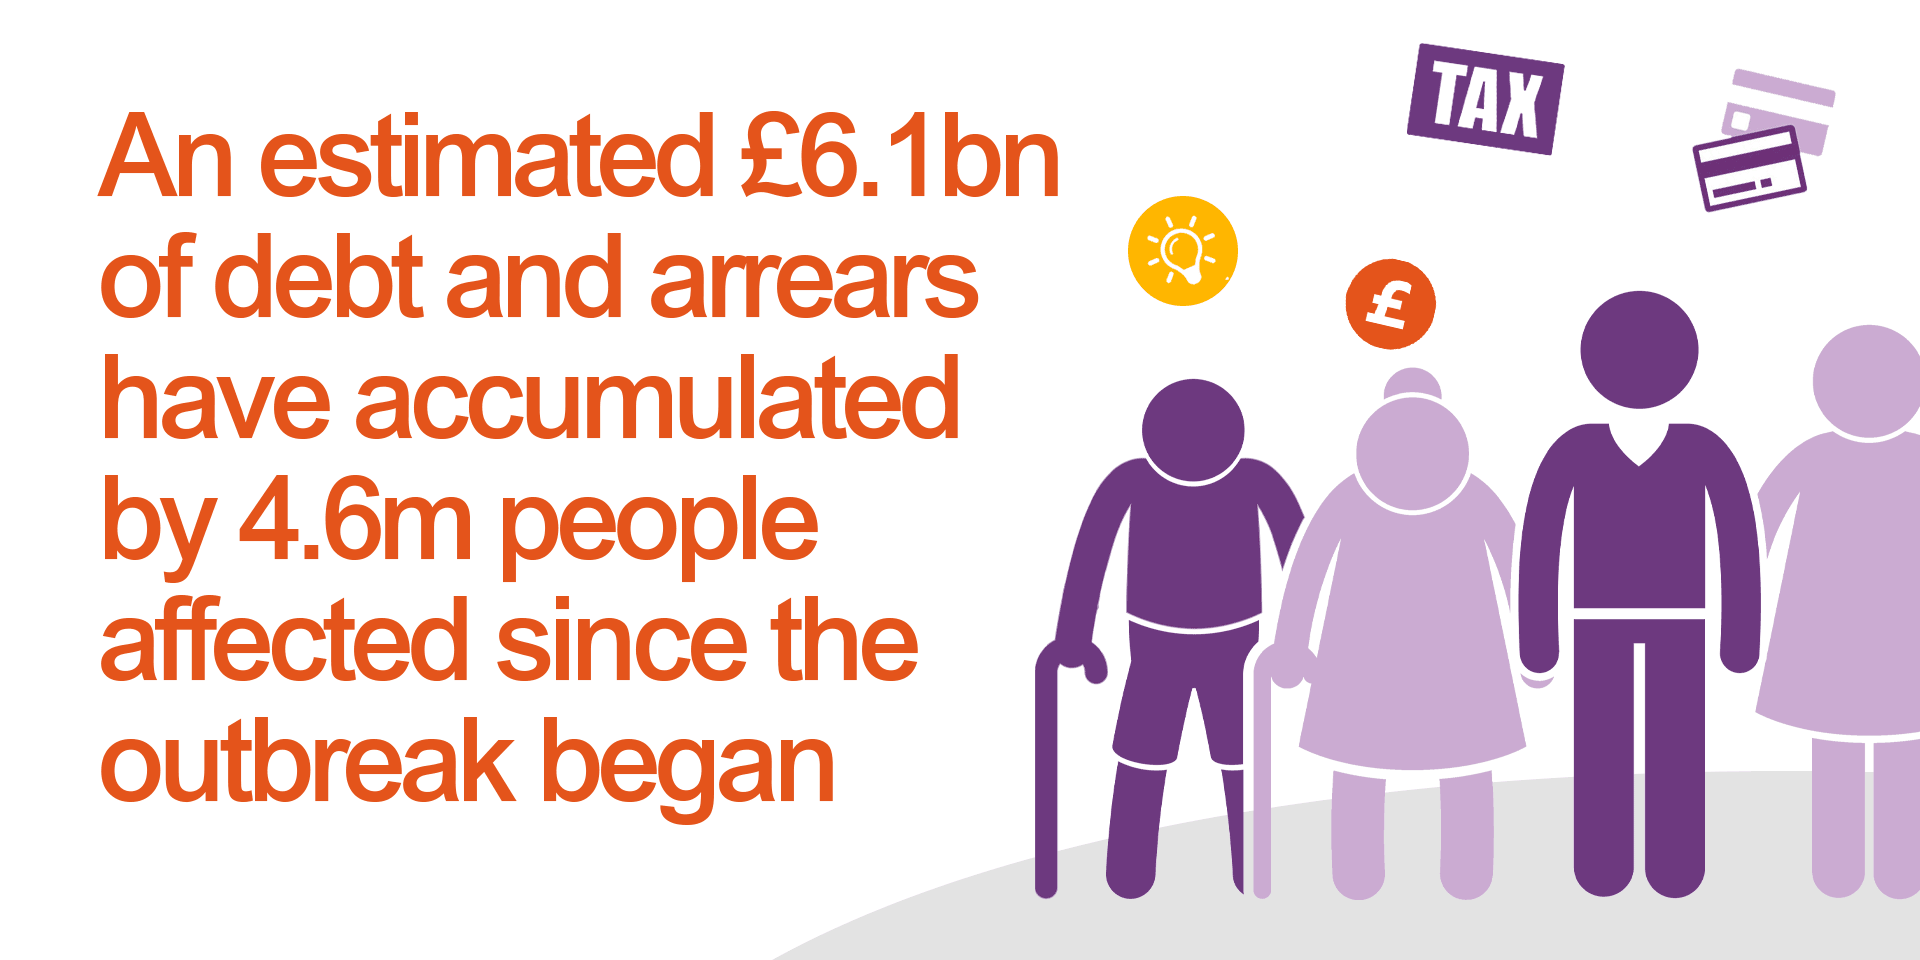 4.6 million people affected have accumulated £6.1 billion of arrears and debt